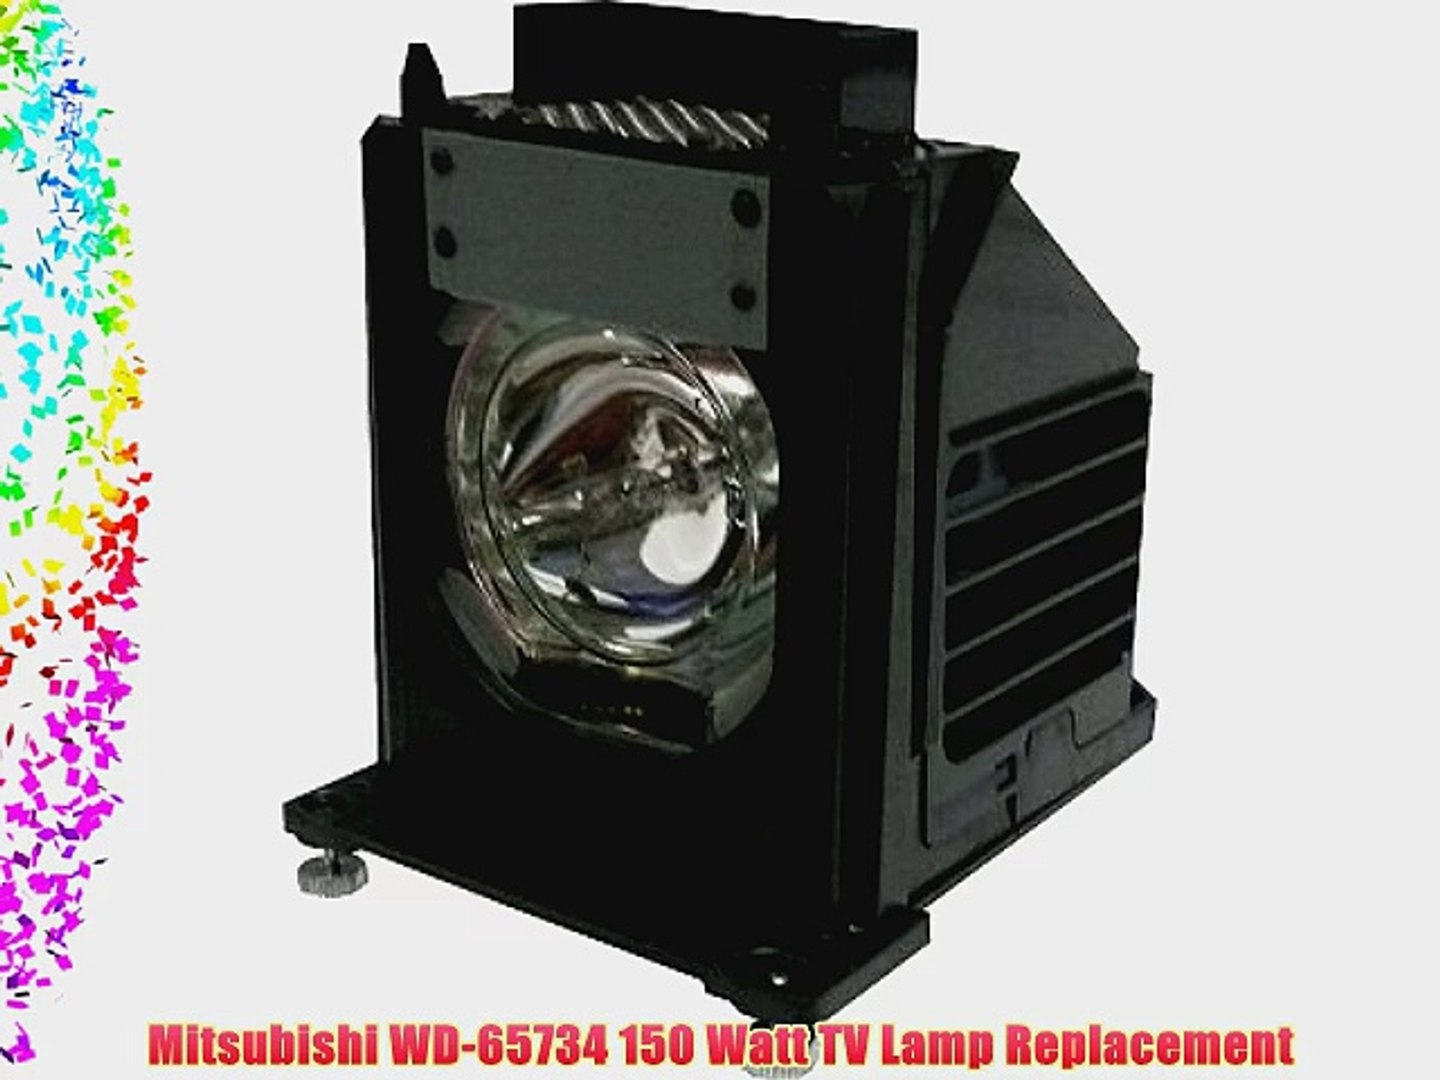 FI Lamps for Mitsubishi wd-65731 Compatible Replacement Rptv Lamp Bulb with Housing